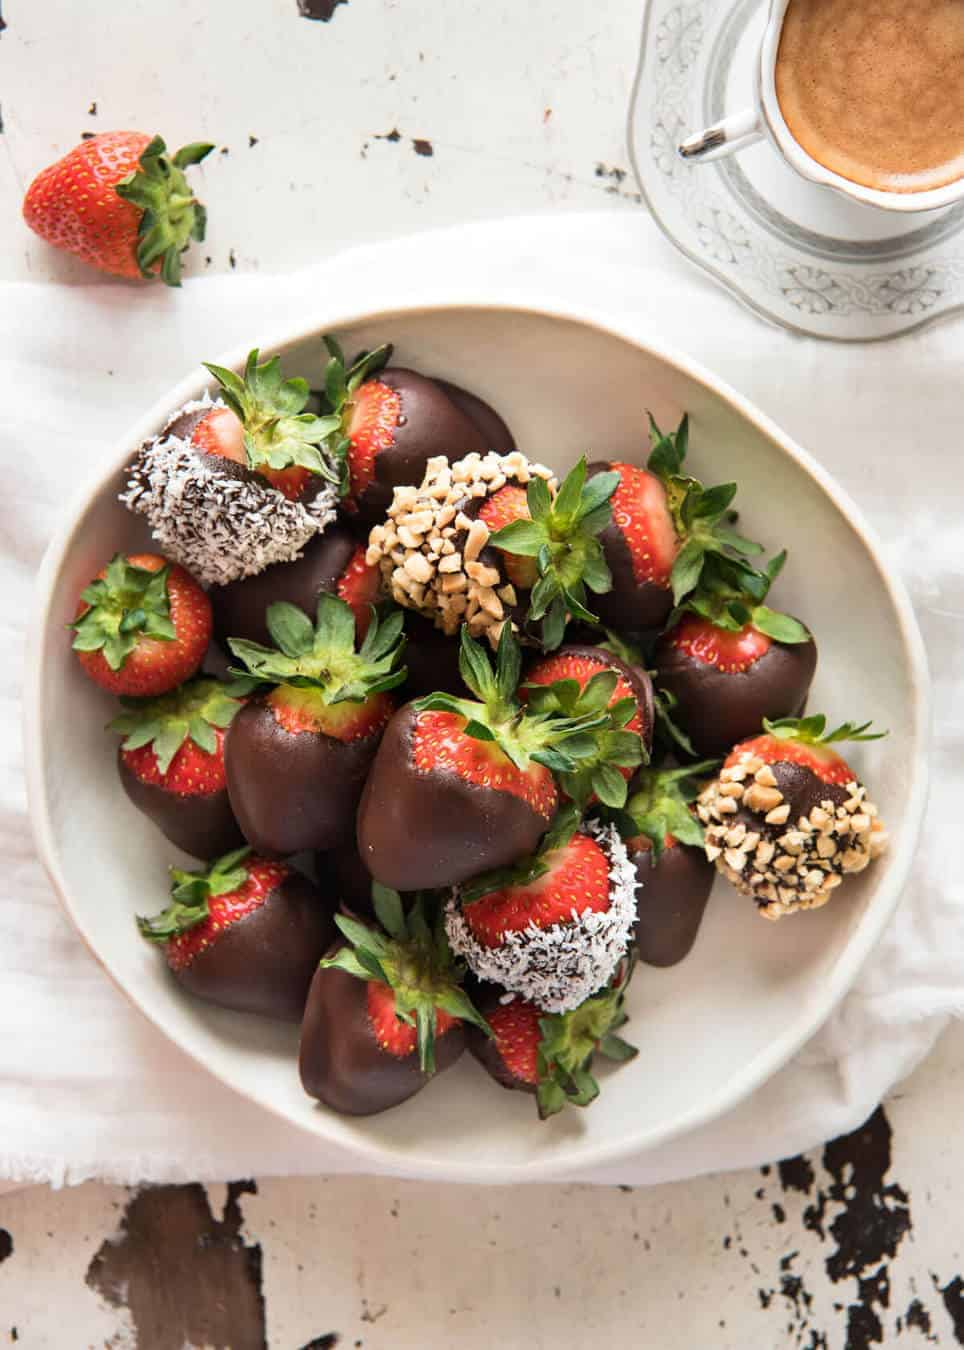 A bowl of chocolate covered strawberries, some coated in nuts and coconut.